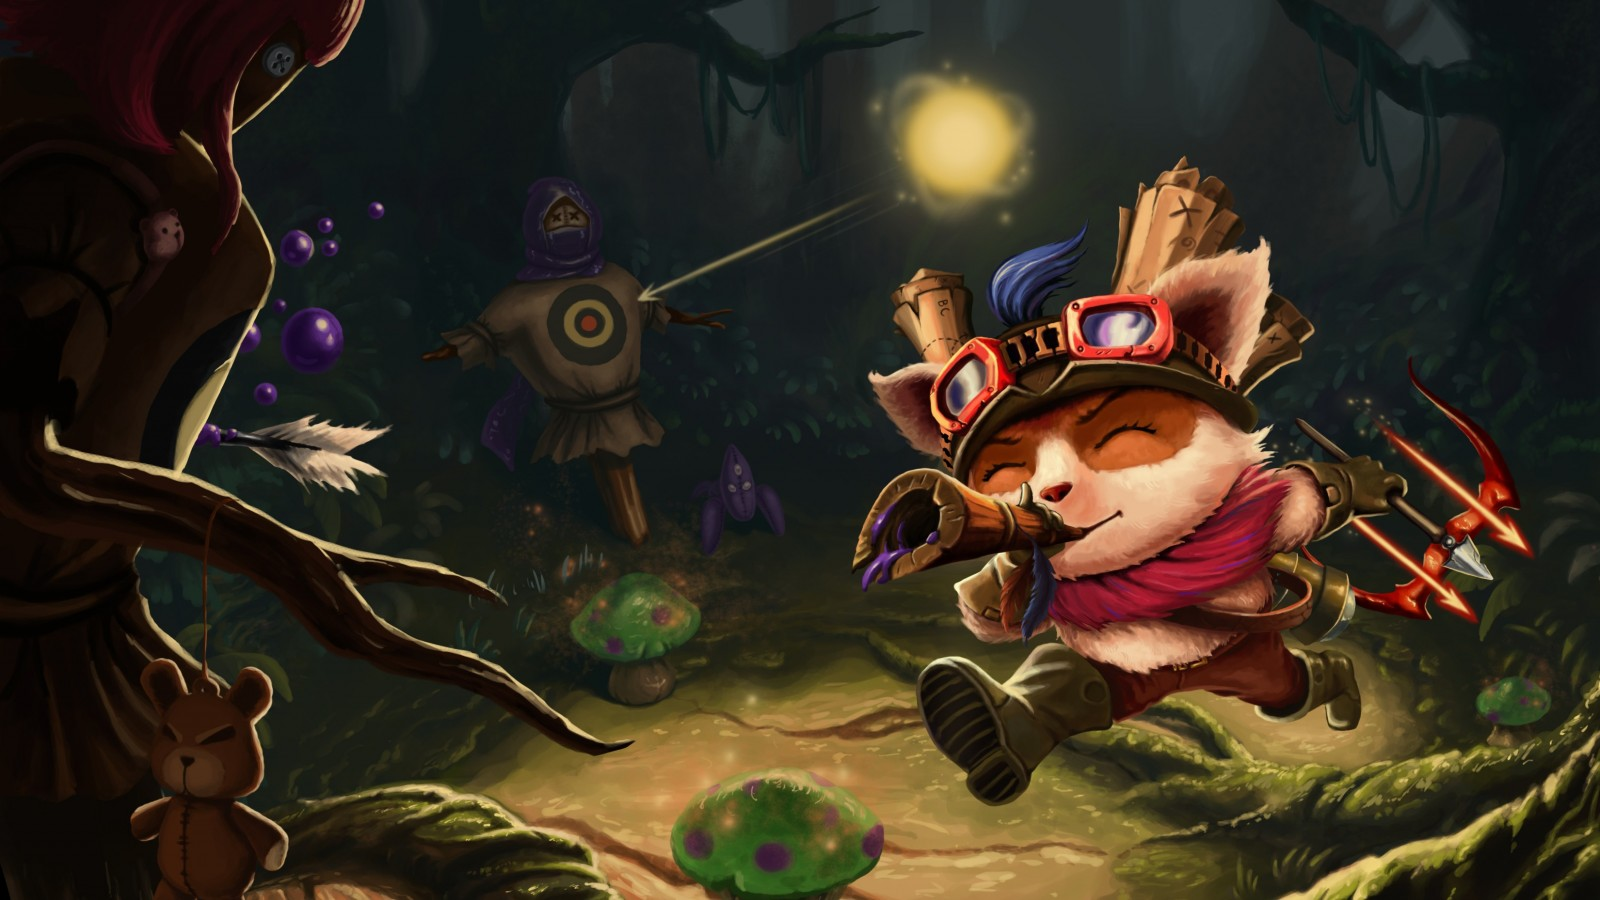 teemo wallpaper - photo #5